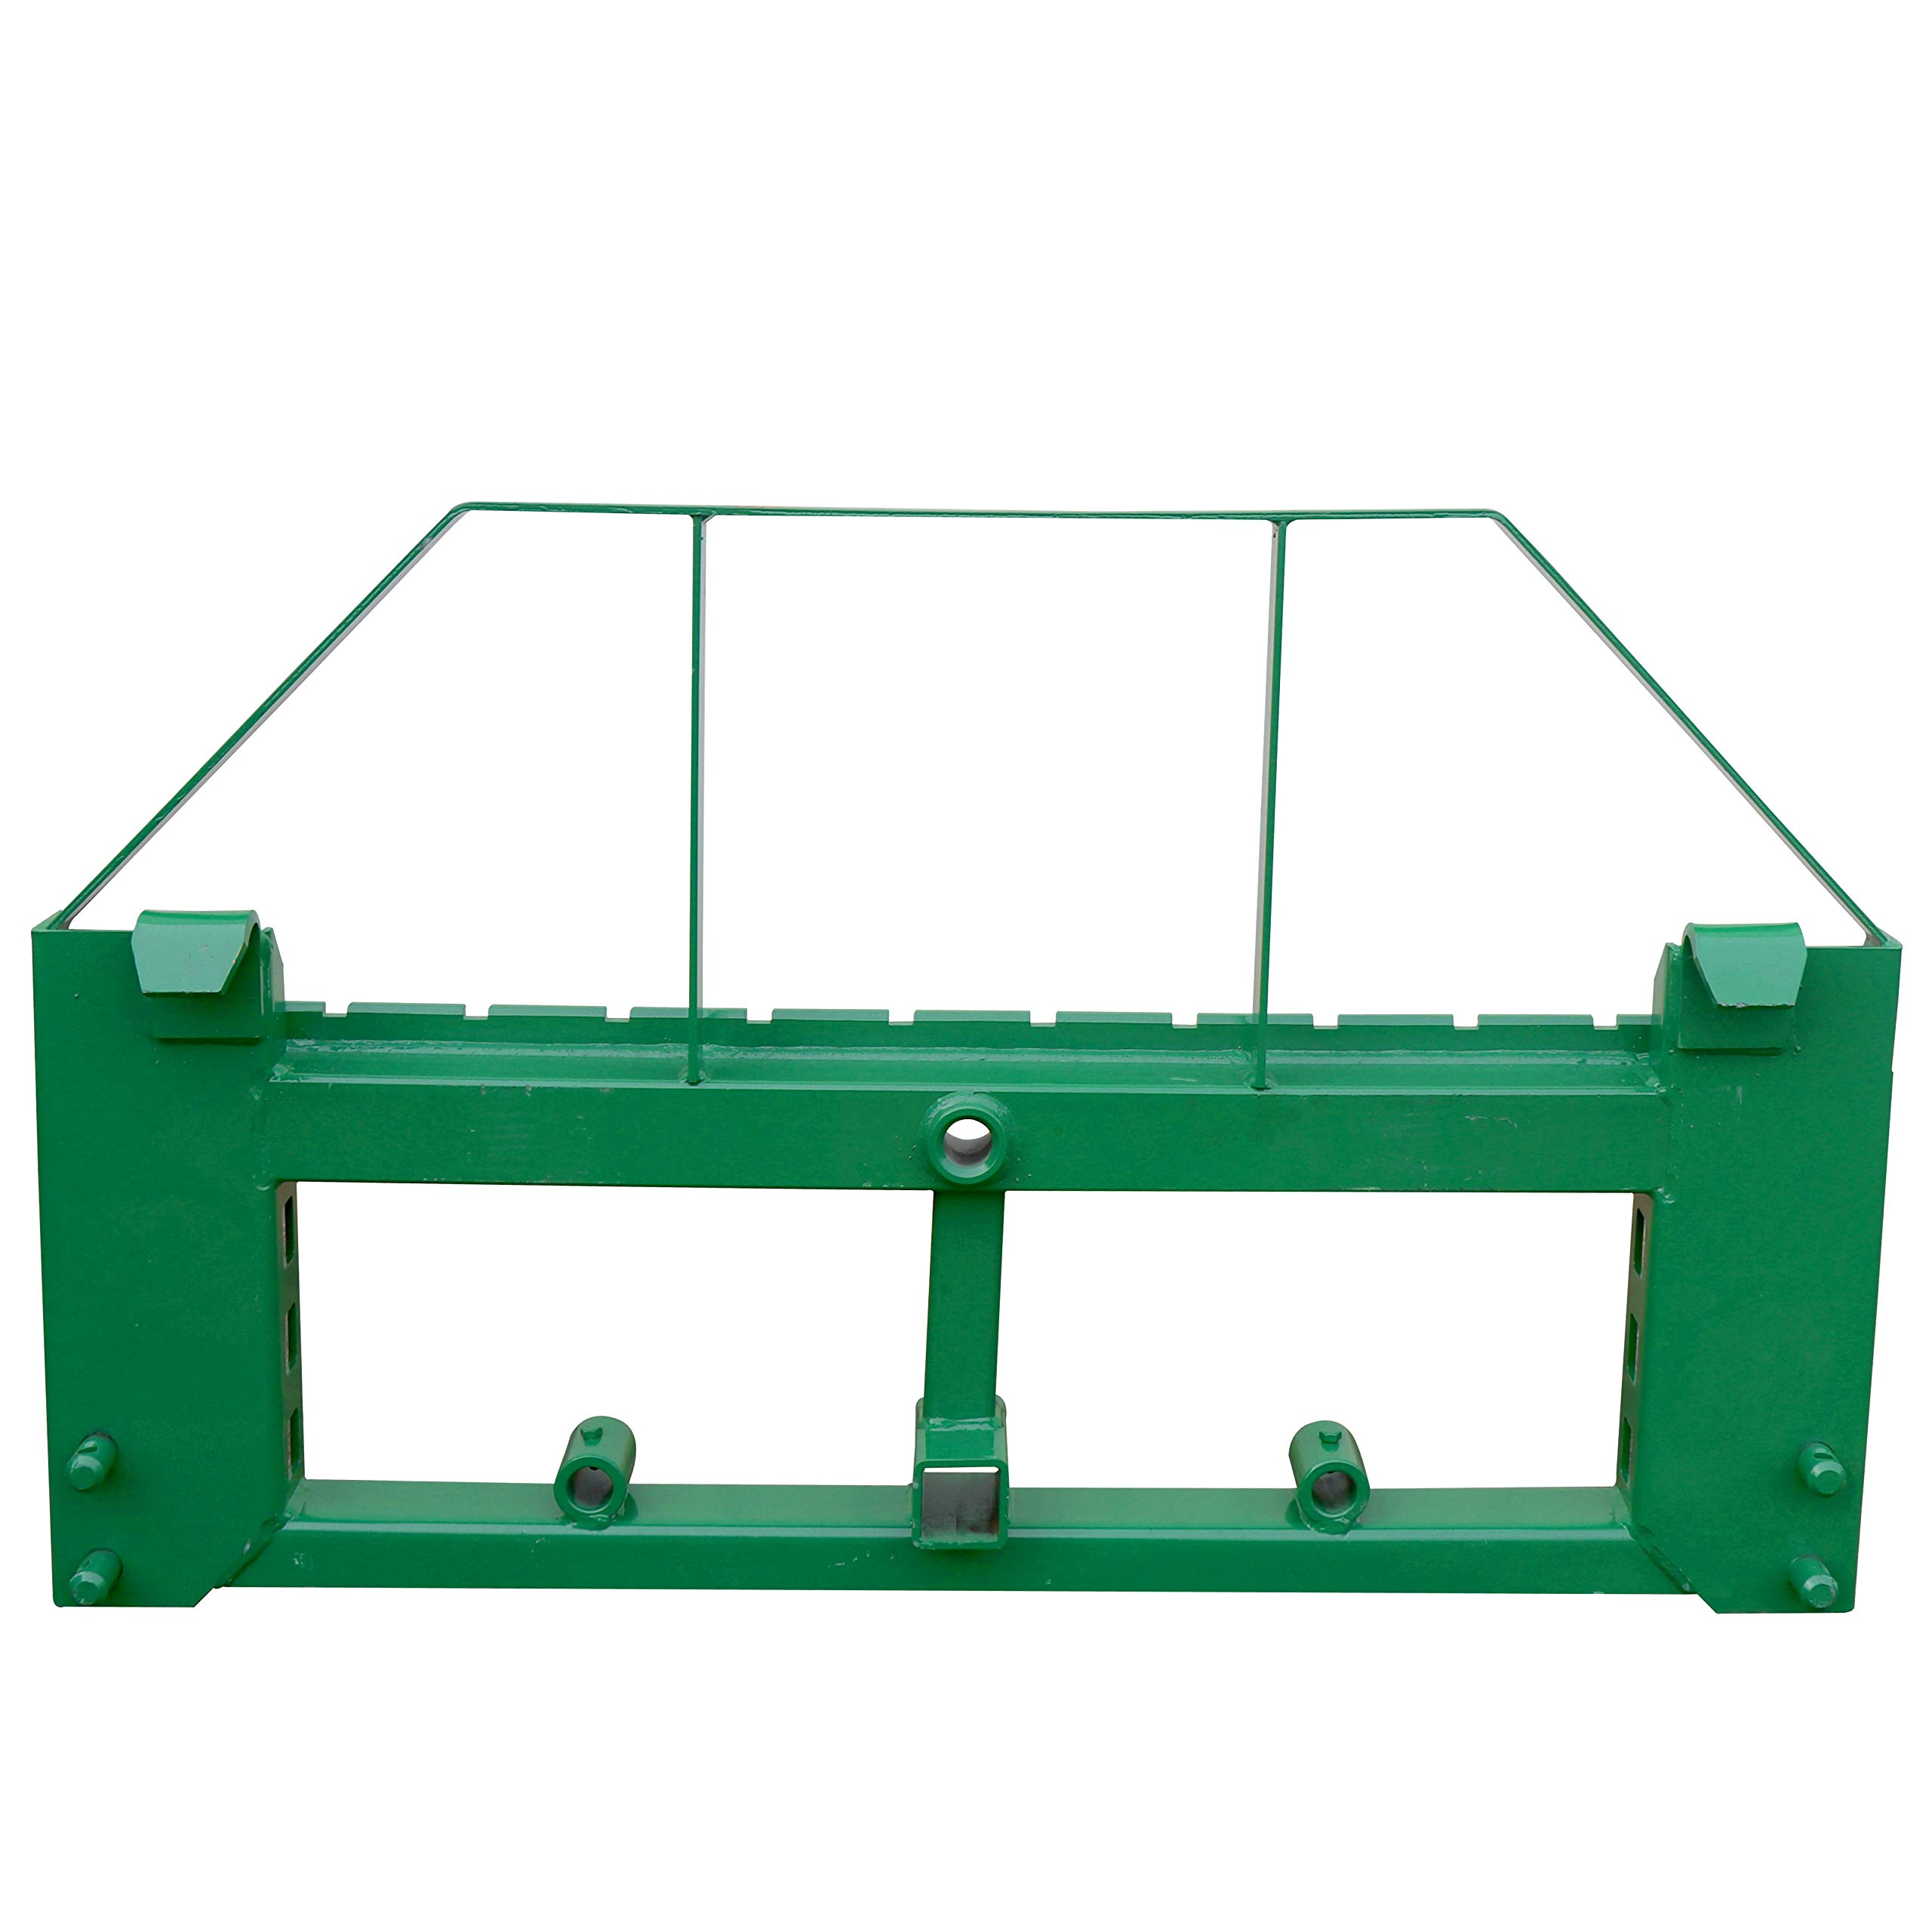 Titan Pallet Fork Frame | Fits John Deere | 2'' Hitch | 48'' Forks | Headache Rack by Titan Distributors Inc.